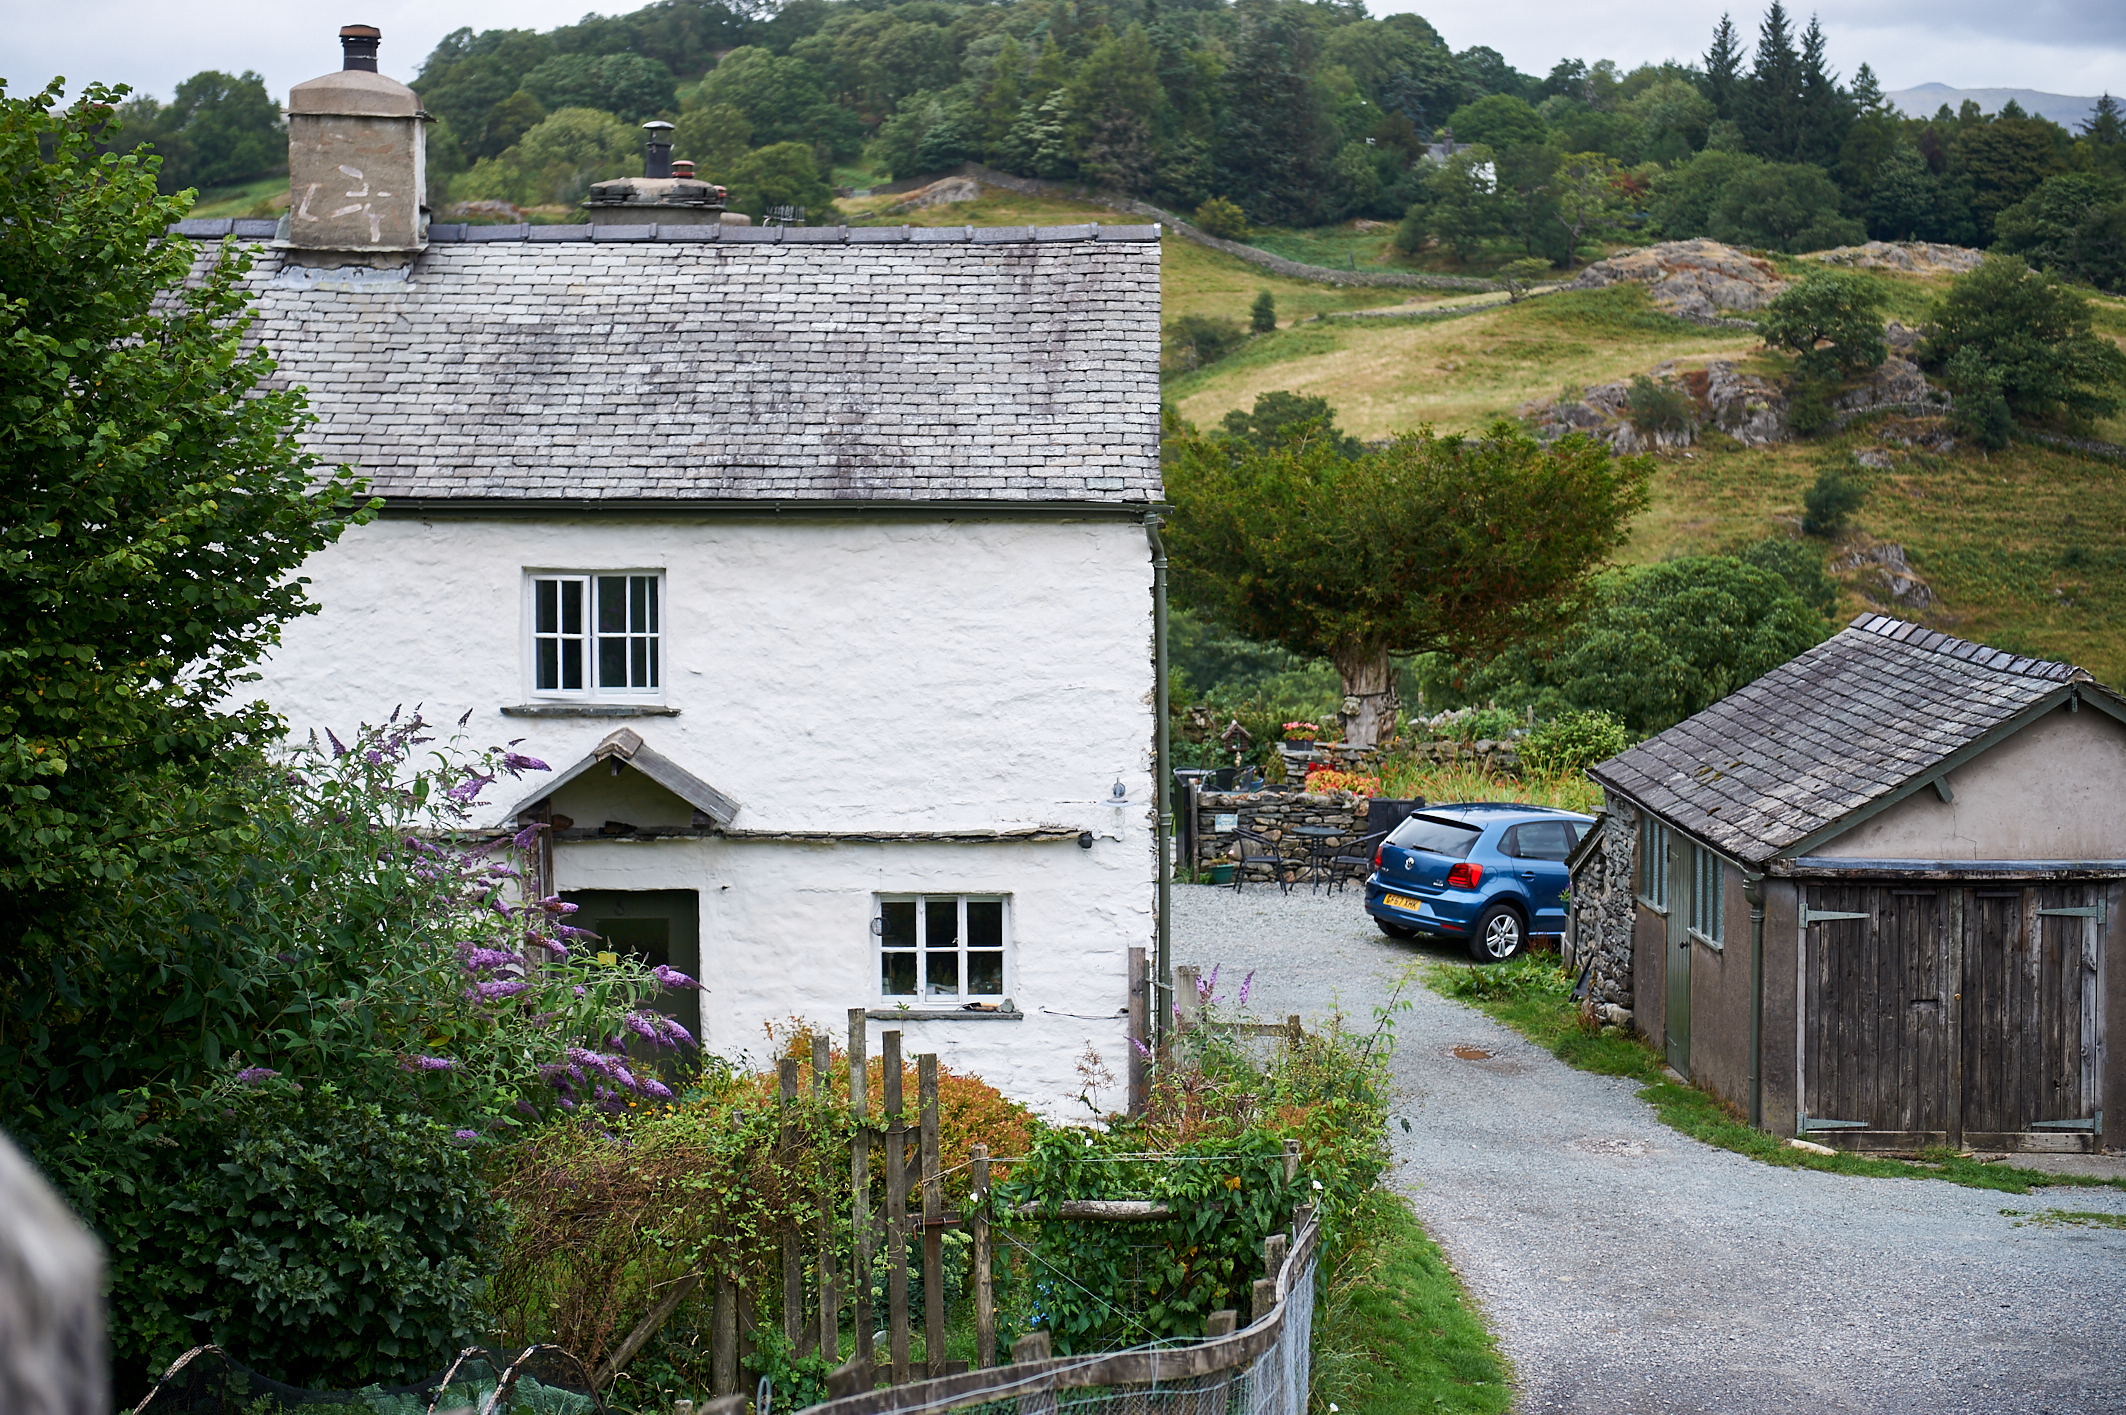 high park farm, little langdale, lake district, national trust, beatrix potter, cumbria, england, uk,photos and the city